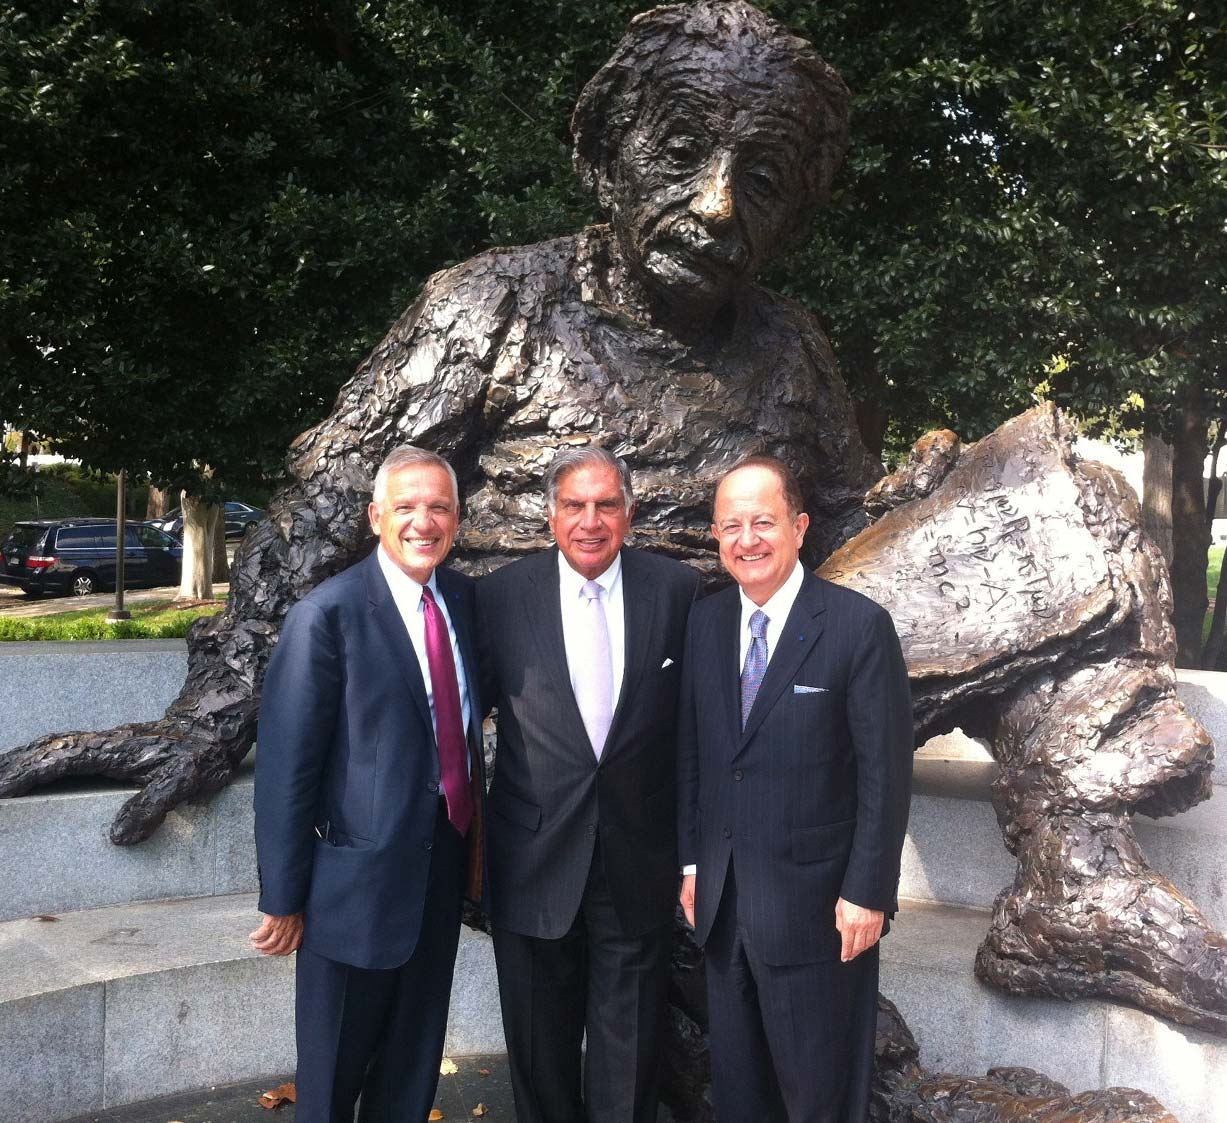 Ratan N. Tata flanked by Dean Yannis C. Yortsos and USC President C. L. Max Nikias in Washington, D.C.